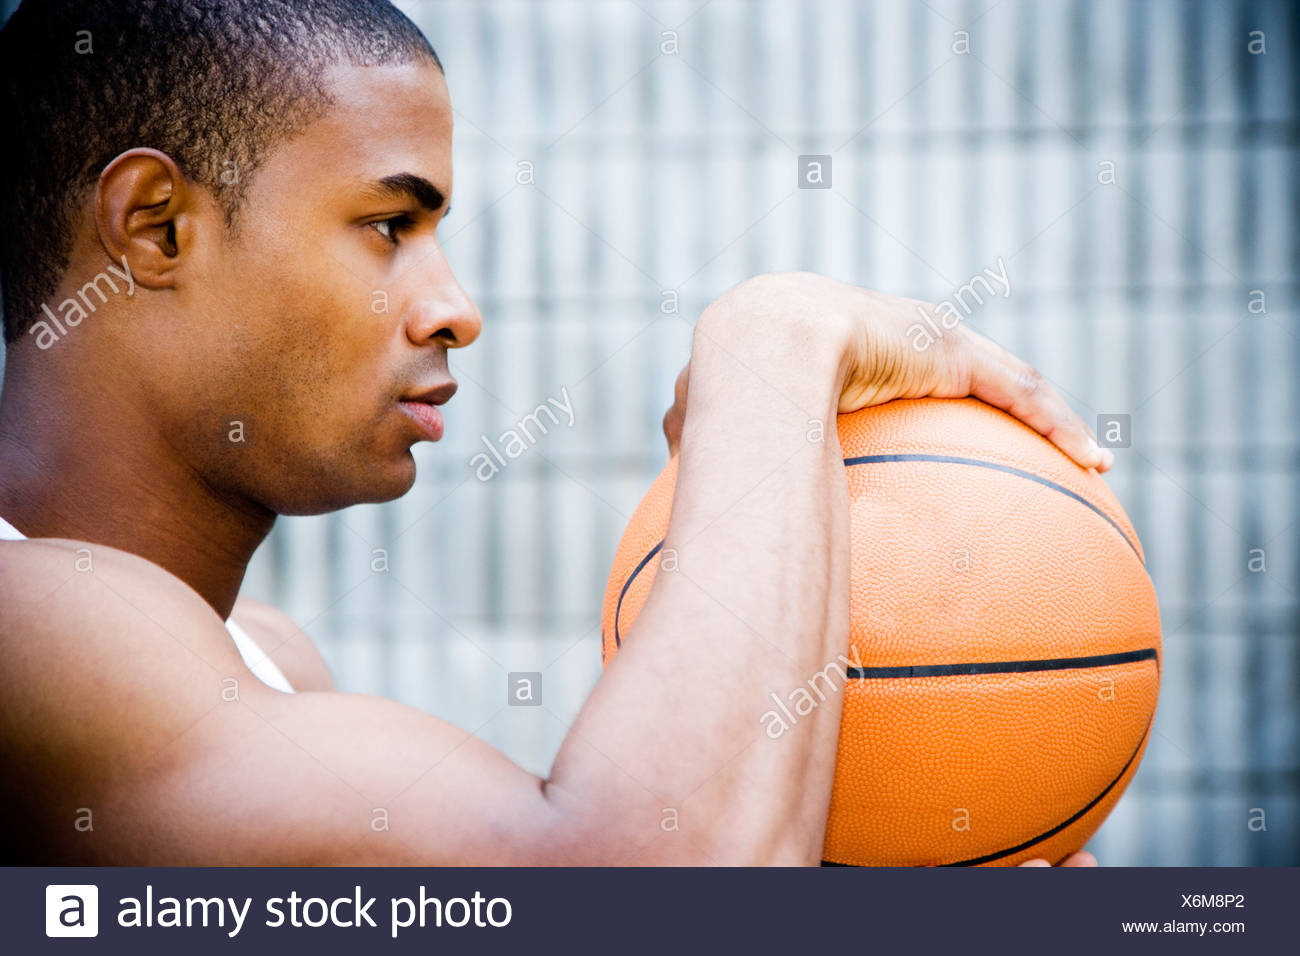 Portrait of a young African American man holding a basketball. - Stock Image